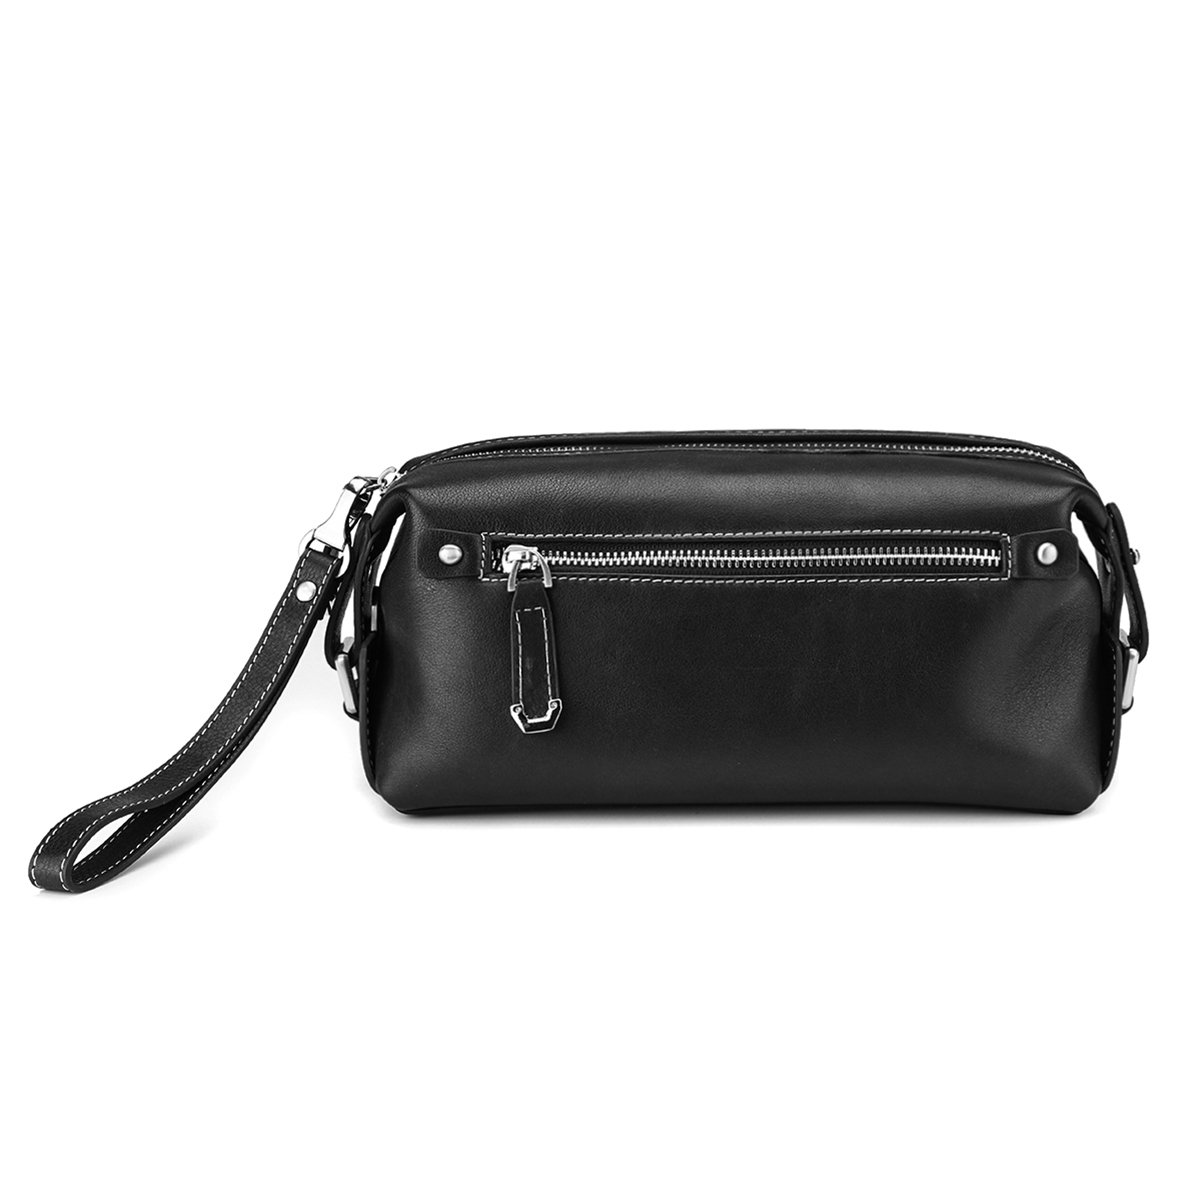 HT Genuine Leather Day Clutches Men Handbags Black Handy Bags Zipper Male Purses Cow Leather Square Top Handle Bags Zipper-in Top-Handle Bags from Luggage & Bags    3